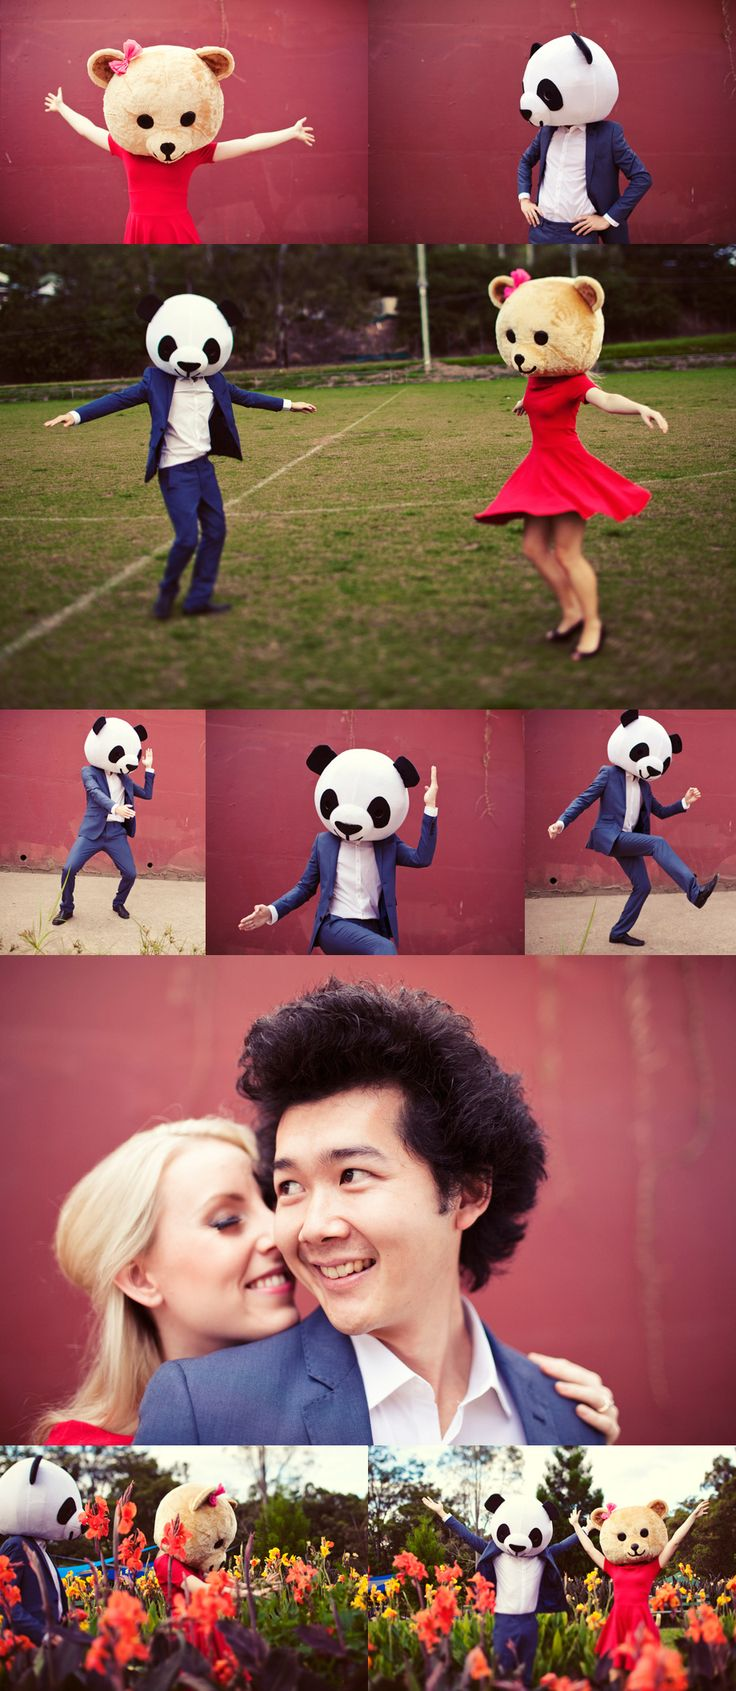 Panda & bear for the engagement. Love.